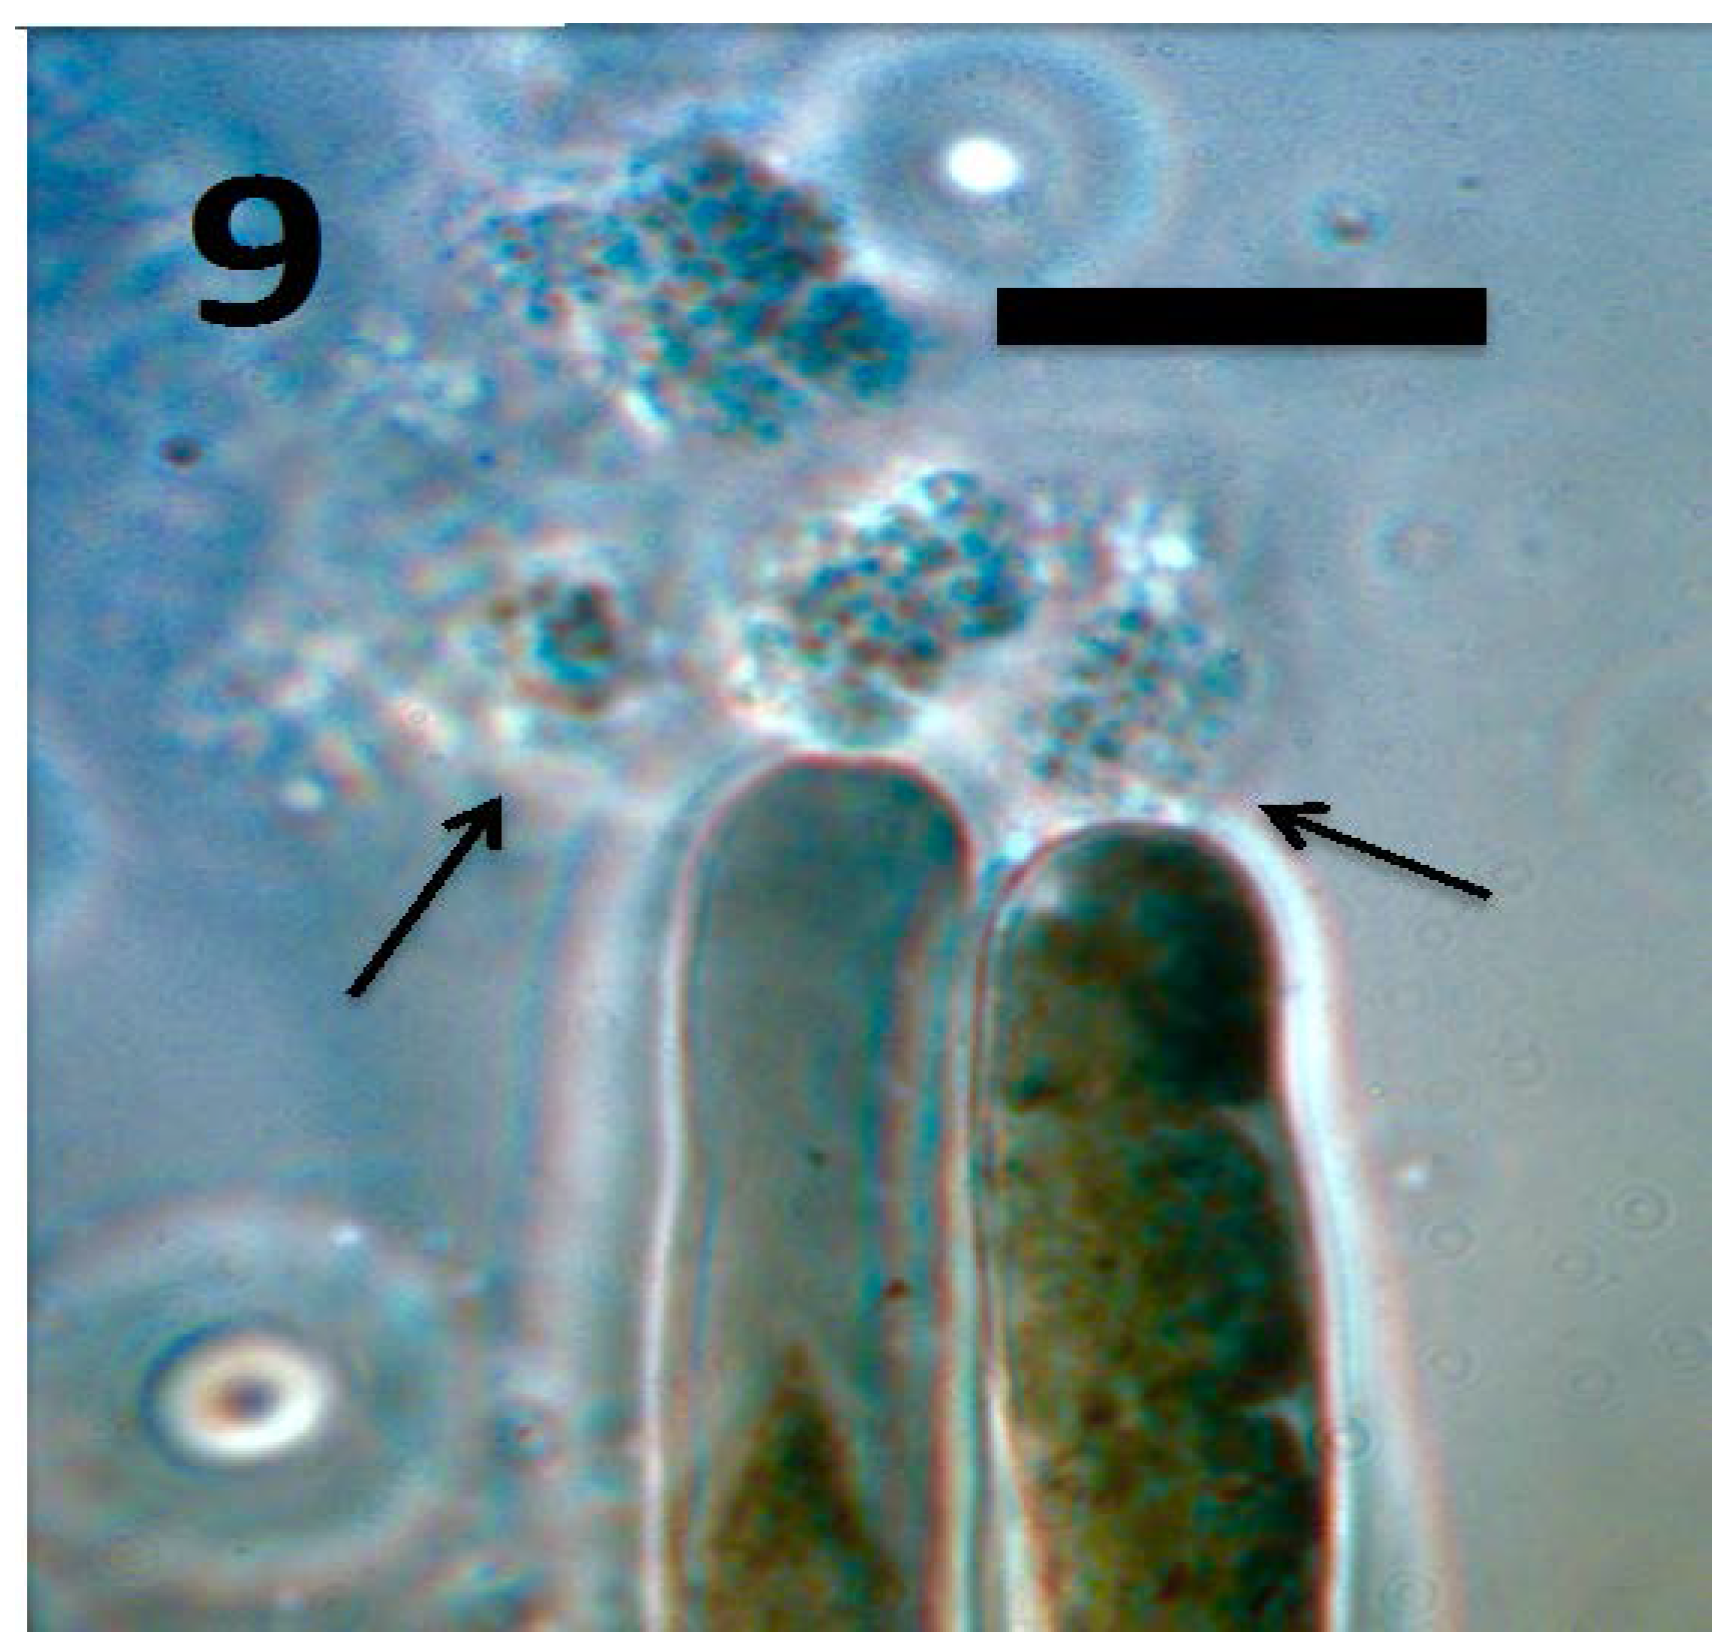 Rhizophagy Cycle: An Oxidative Process in Plants for Nutrient Extraction from Symbiotic Microbes